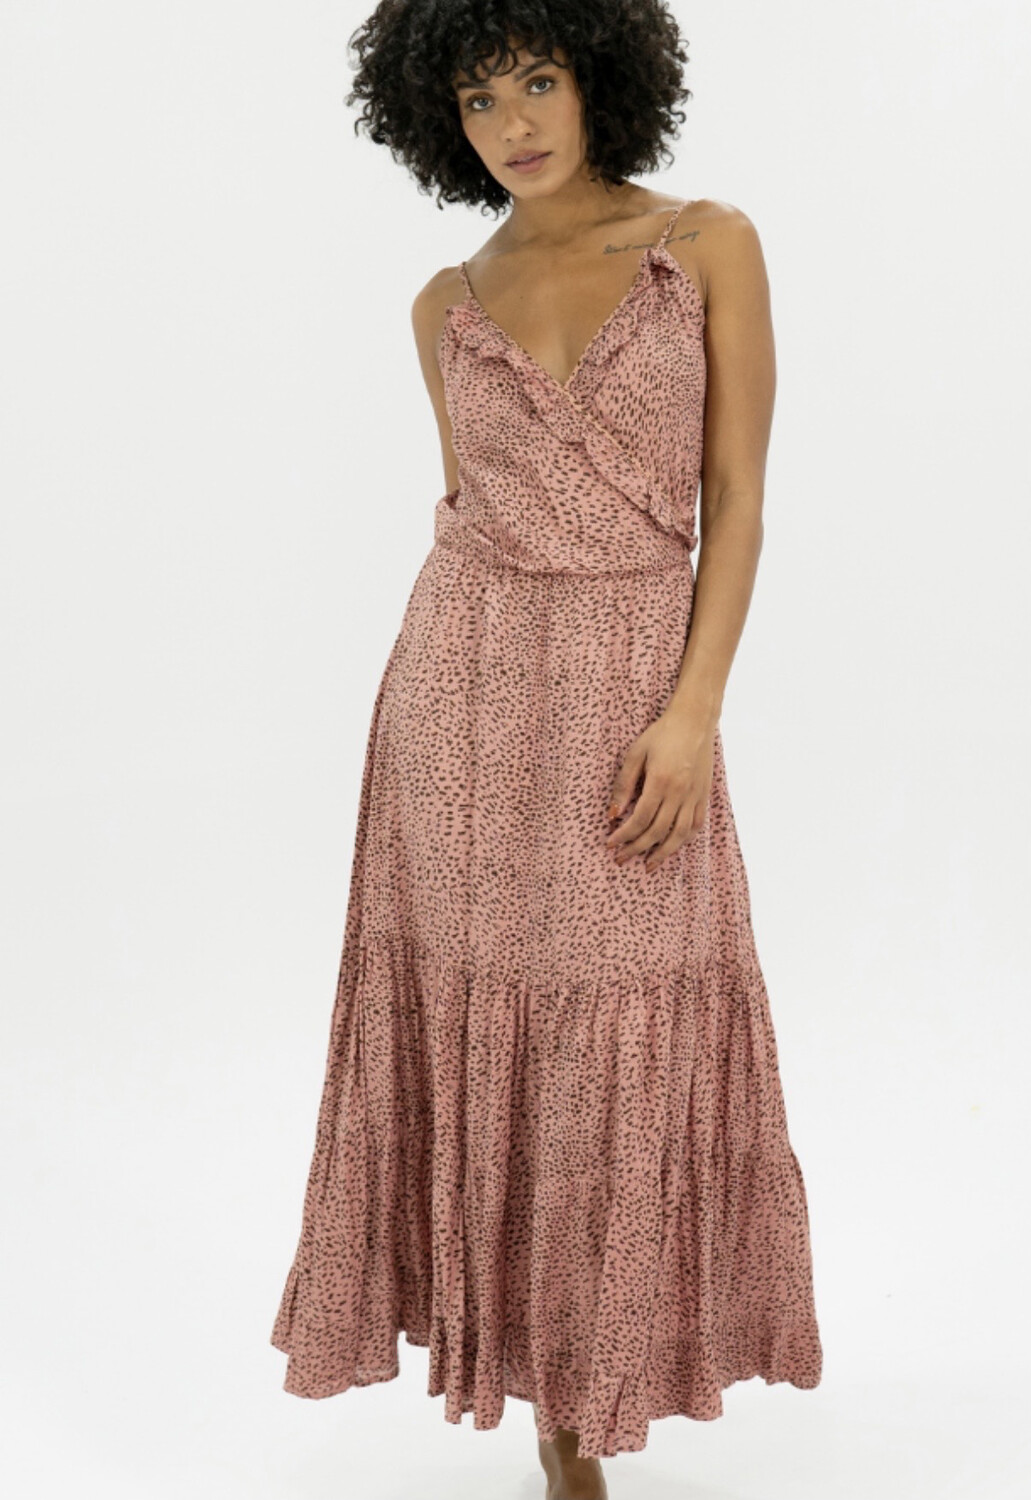 Pink Panther Dress (Coming Soon)